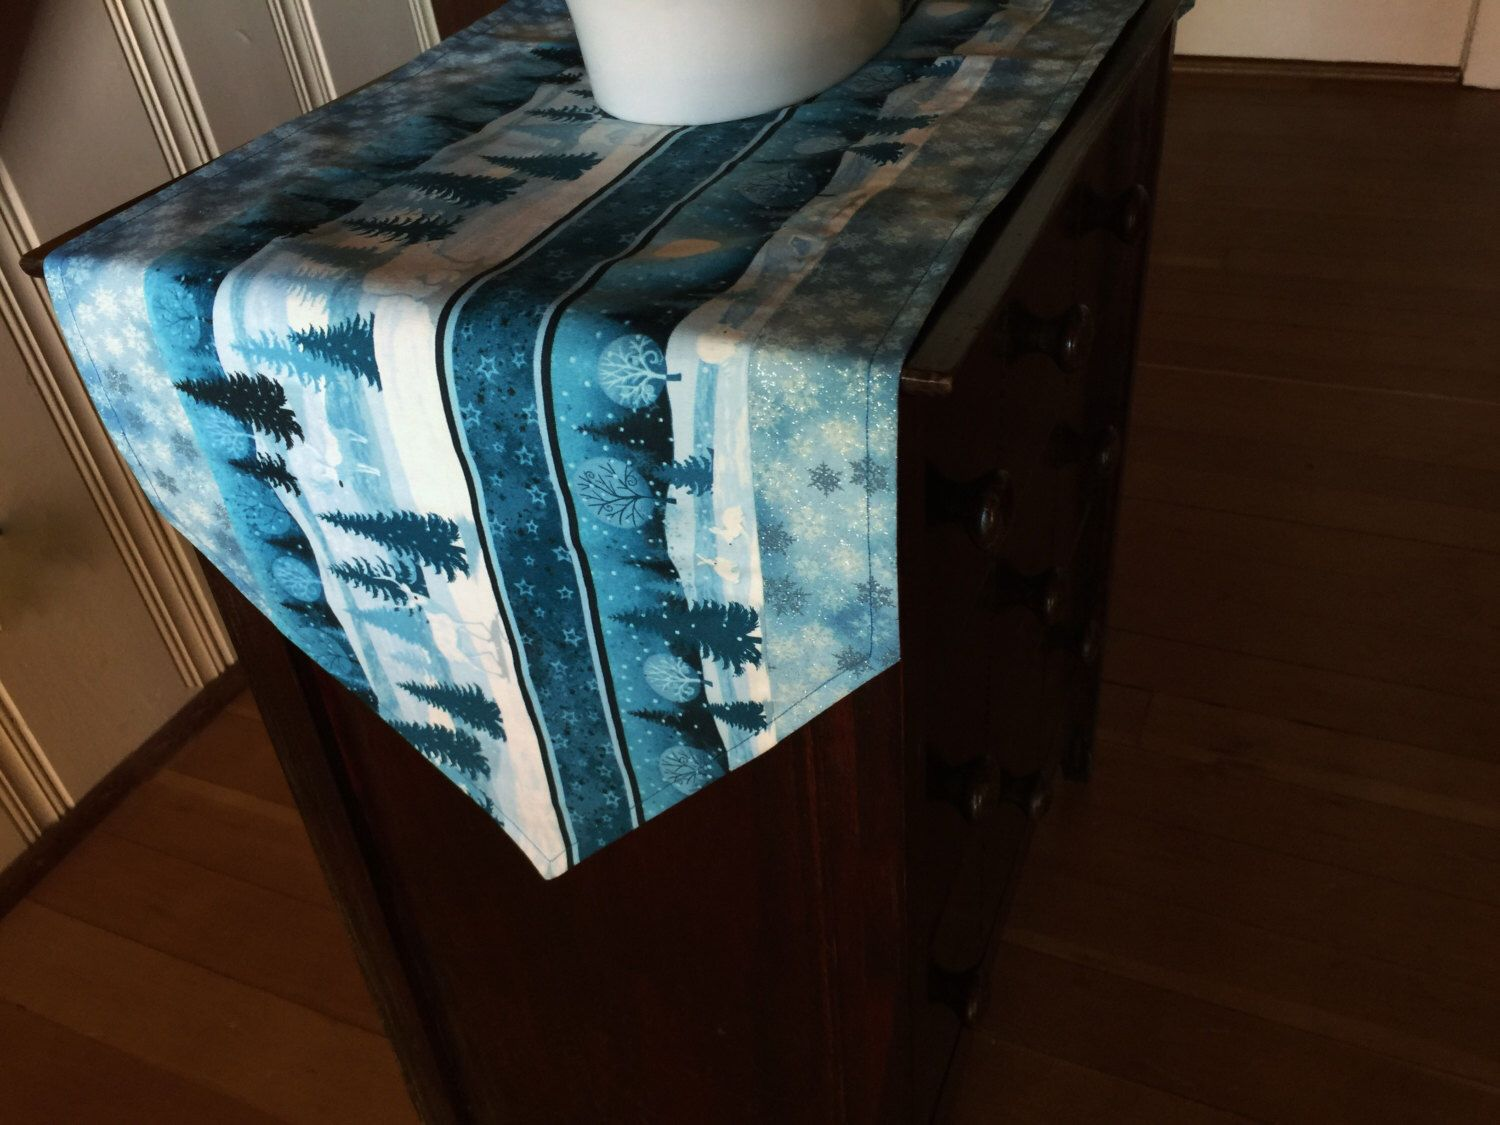 "Winter Table Runner, Handmade Winter Scene Table Runner, 42"" Cotton Snow Scene Table Runner, Teal Table Topper, Holiday Table Decor by MarlenesSewingRoom on Etsy https://www.etsy.com/listing/474340542/winter-table-runner-handmade-winter"